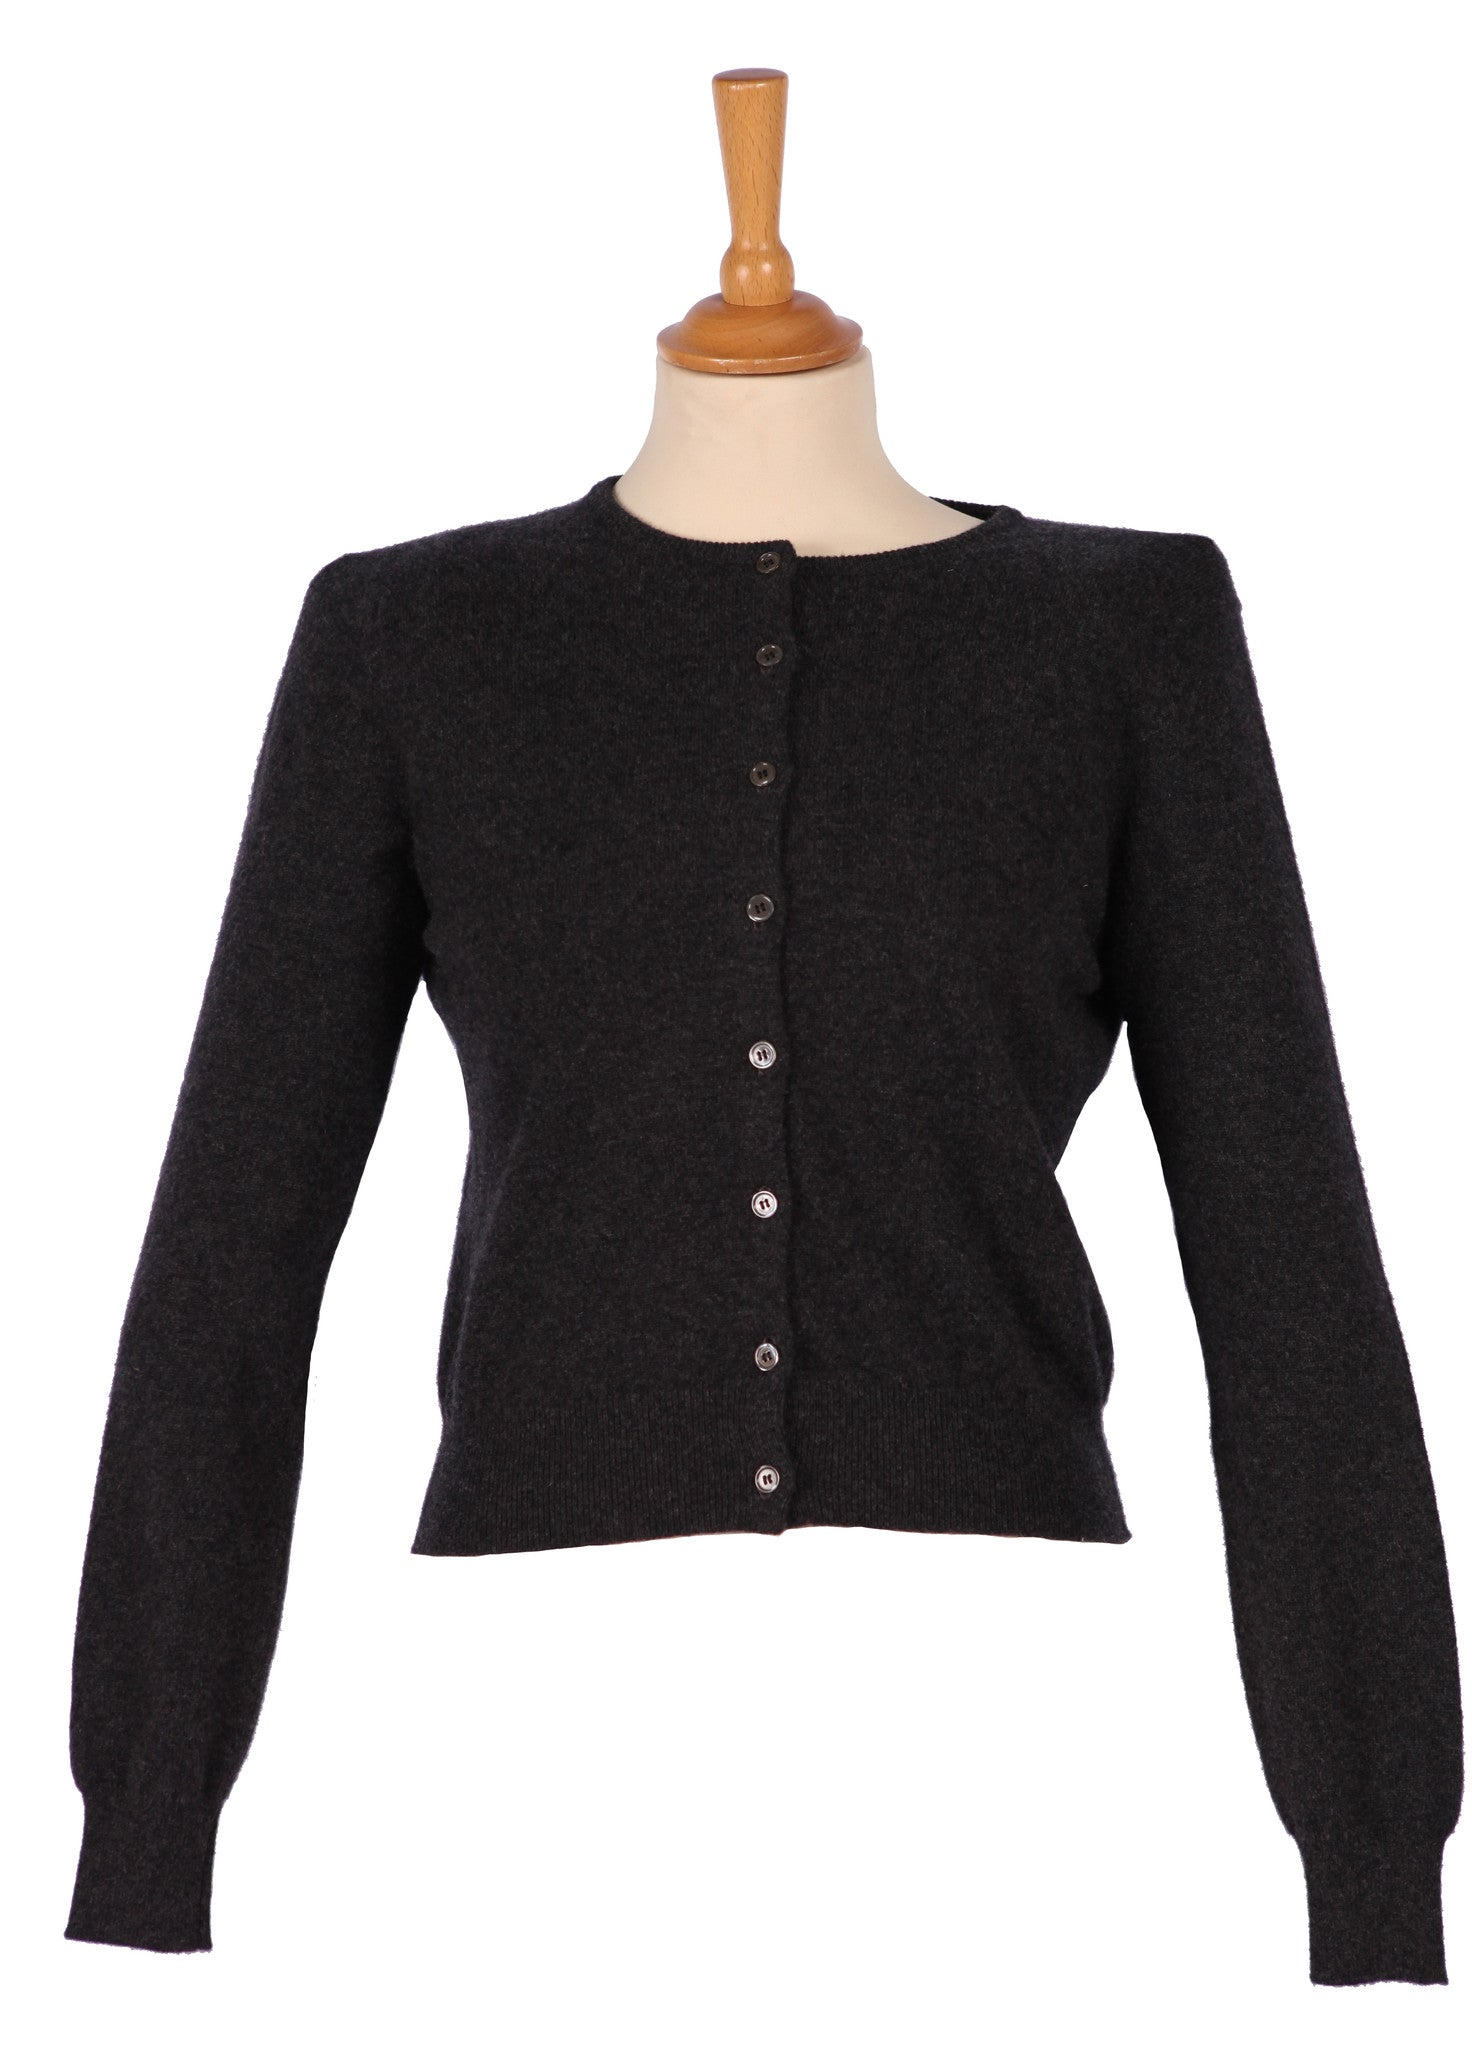 Cashmere Cropped Classic Cardigan Dark Charcoal - Jenny M. London  - 1